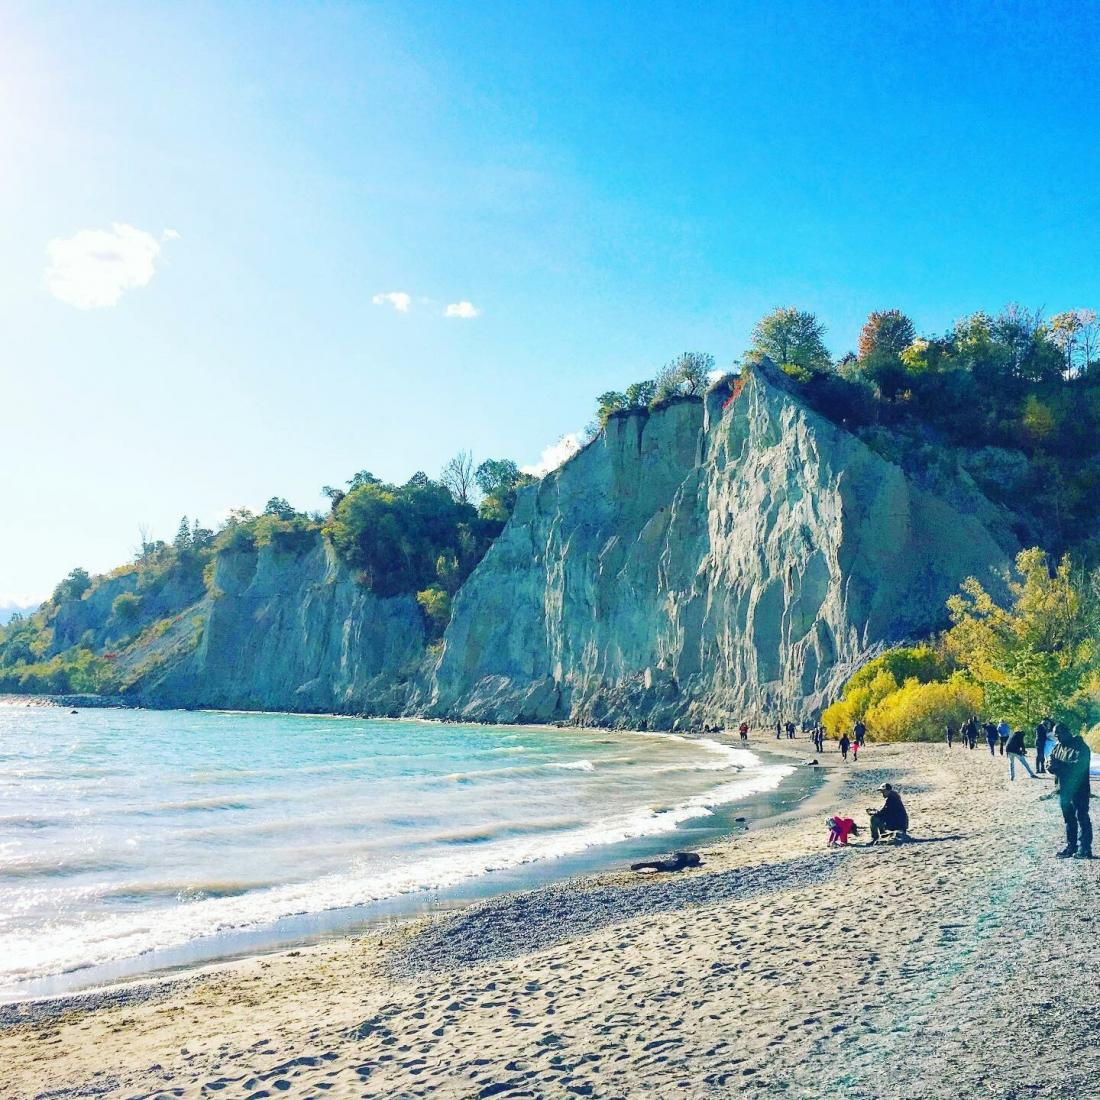 Becky Katz trip to the Scarborough Bluffs